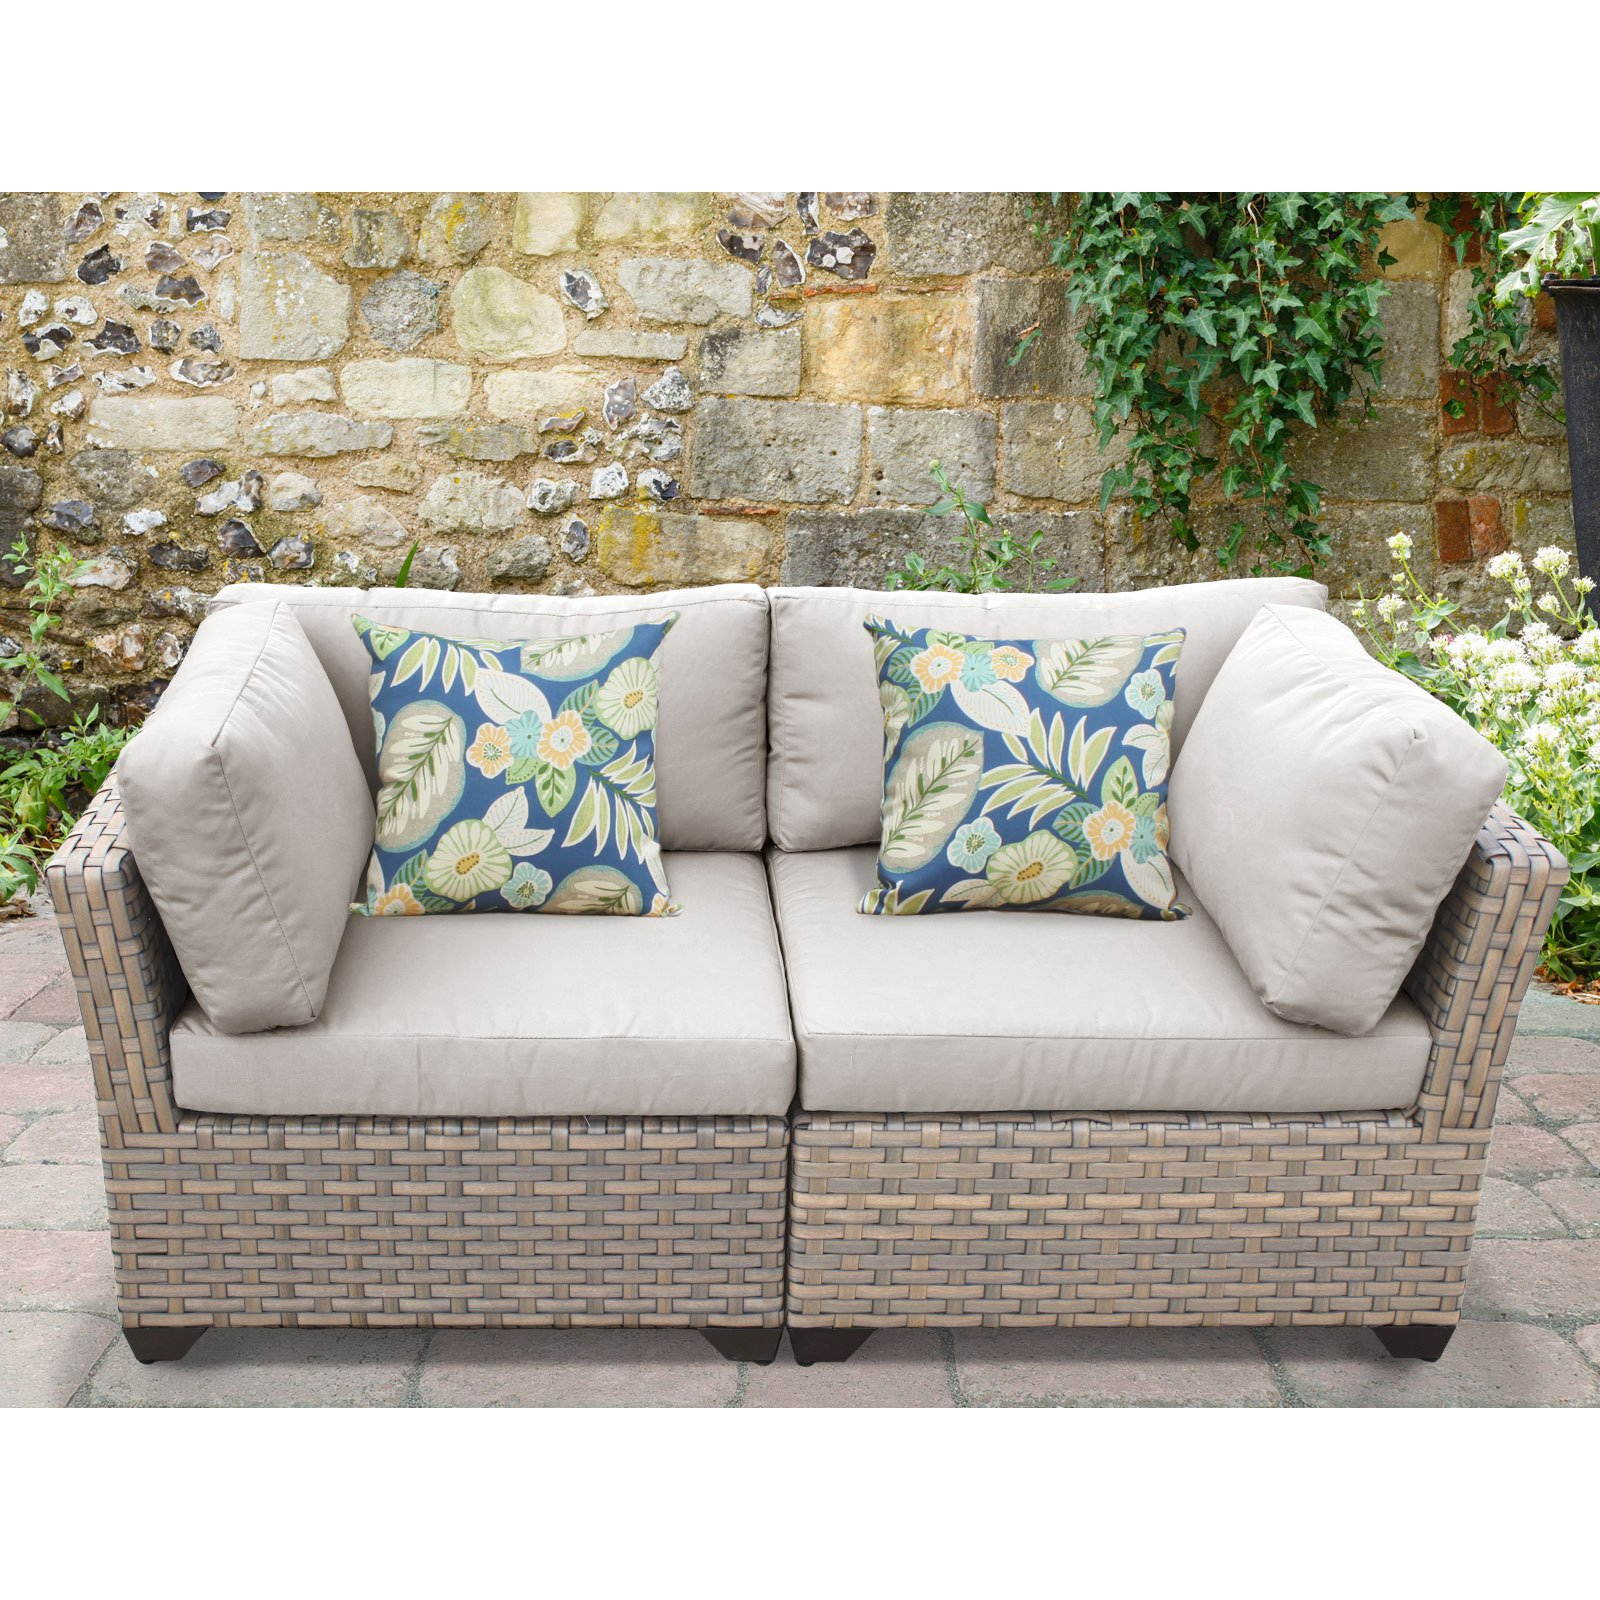 lexmod monterey outdoor wicker rattan sectional sofa set puzzle innovation tk classics 2 piece loveseat